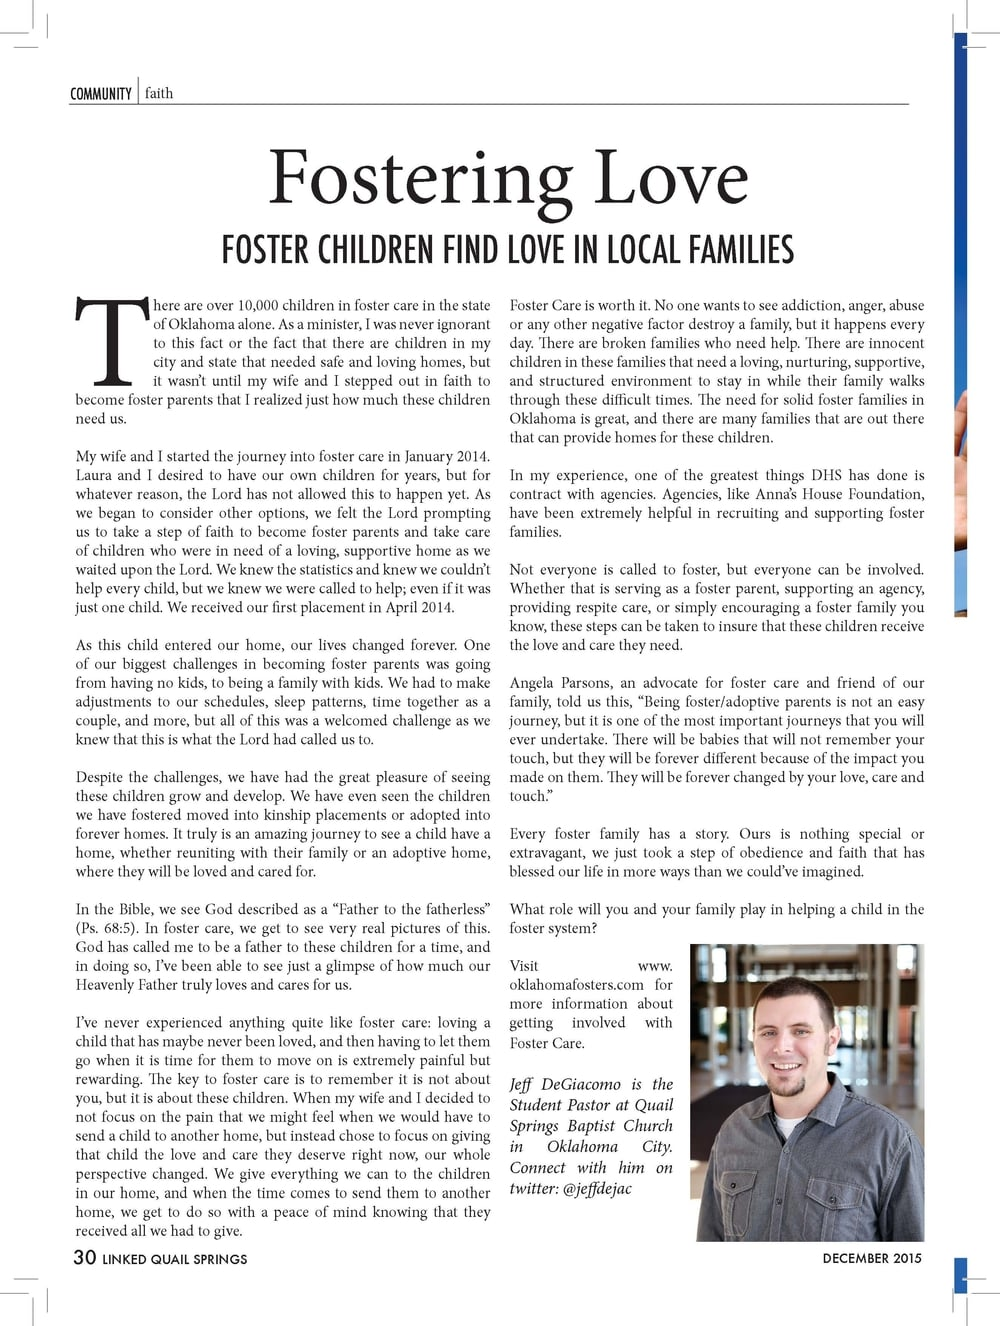 "Fostering Love  FOSTER CHILDREN FIND LOVE IN LOCAL FAMILIES  There are over 10,000 children in foster care in the state  of Oklahoma alone. As a minister, I was never ignorant  to this fact or the fact that there are children in my  city and state that needed safe and loving homes, but  it wasn't until my wife and I stepped out in faith to  become foster parents that I realized just how much these children  need us.  My wife and I started the journey into foster care in January 2014.  Laura and I desired to have our own children for years, but for  whatever reason, the Lord has not allowed this to happen yet. As  we began to consider other options, we felt the Lord prompting  us to take a step of faith to become foster parents and take care  of children who were in need of a loving, supportive home as we  waited upon the Lord. We knew the statistics and knew we couldn't  help every child, but we knew we were called to help; even if it was  just one child. We received our first placement in April 2014.  As this child entered our home, our lives changed forever. One  of our biggest challenges in becoming foster parents was going  from having no kids, to being a family with kids. We had to make  adjustments to our schedules, sleep patterns, time together as a  couple, and more, but all of this was a welcomed challenge as we  knew that this is what the Lord had called us to.  Despite the challenges, we have had the great pleasure of seeing  these children grow and develop. We have even seen the children  we have fostered moved into kinship placements or adopted into  forever homes. It truly is an amazing journey to see a child have a  home, whether reuniting with their family or an adoptive home,  where they will be loved and cared for.  In the Bible, we see God described as a ""Father to the fatherless""  (Ps. 68:5). In foster care, we get to see very real pictures of this.  God has called me to be a father to these children for a time, and  in doing so, I've been able to see just a glimpse of how much our  Heavenly Father truly loves and cares for us.  I've never experienced anything quite like foster care: loving a  child that has maybe never been loved, and then having to let them  go when it is time for them to move on is extremely painful but  rewarding. The key to foster care is to remember it is not about  you, but it is about these children. When my wife and I decided to  not focus on the pain that we might feel when we would have to  send a child to another home, but instead chose to focus on giving  that child the love and care they deserve right now, our whole  perspective changed. We give everything we can to the children  in our home, and when the time comes to send them to another  home, we get to do so with a peace of mind knowing that they  received all we had to give.  Foster Care is worth it. No one wants to see addiction, anger, abuse  or any other negative factor destroy a family, but it happens every  day. There are broken families who need help. There are innocent  children in these families that need a loving, nurturing, supportive,  and structured environment to stay in while their family walks  through these difficult times. The need for solid foster families in  Oklahoma is great, and there are many families that are out there  that can provide homes for these children.  In my experience, one of the greatest things DHS has done is  contract with agencies. Agencies, like Anna's House Foundation,  have been extremely helpful in recruiting and supporting foster  families.  Not everyone is called to foster, but everyone can be involved.  Whether that is serving as a foster parent, supporting an agency,  providing respite care, or simply encouraging a foster family you  know, these steps can be taken to insure that these children receive  the love and care they need.  Angela Parsons, an advocate for foster care and friend of our  family, told us this, ""Being foster/adoptive parents is not an easy  journey, but it is one of the most important journeys that you will  ever undertake. There will be babies that will not remember your  touch, but they will be forever different because of the impact you  made on them. They will be forever changed by your love, care and  touch.""  Every foster family has a story. Ours is nothing special or  extravagant, we just took a step of obedience and faith that has  blessed our life in more ways than we could've imagined.  What role will you and your family play in helping a child in the  foster system?  Visit www.  oklahomafosters.com for  more information about  getting involved with  Foster Care.  Jeff DeGiacomo is the  Student Pastor at Quail  Springs Baptist Church  in Oklahoma City.  Connect with him on  twitter: @jeffdejac"